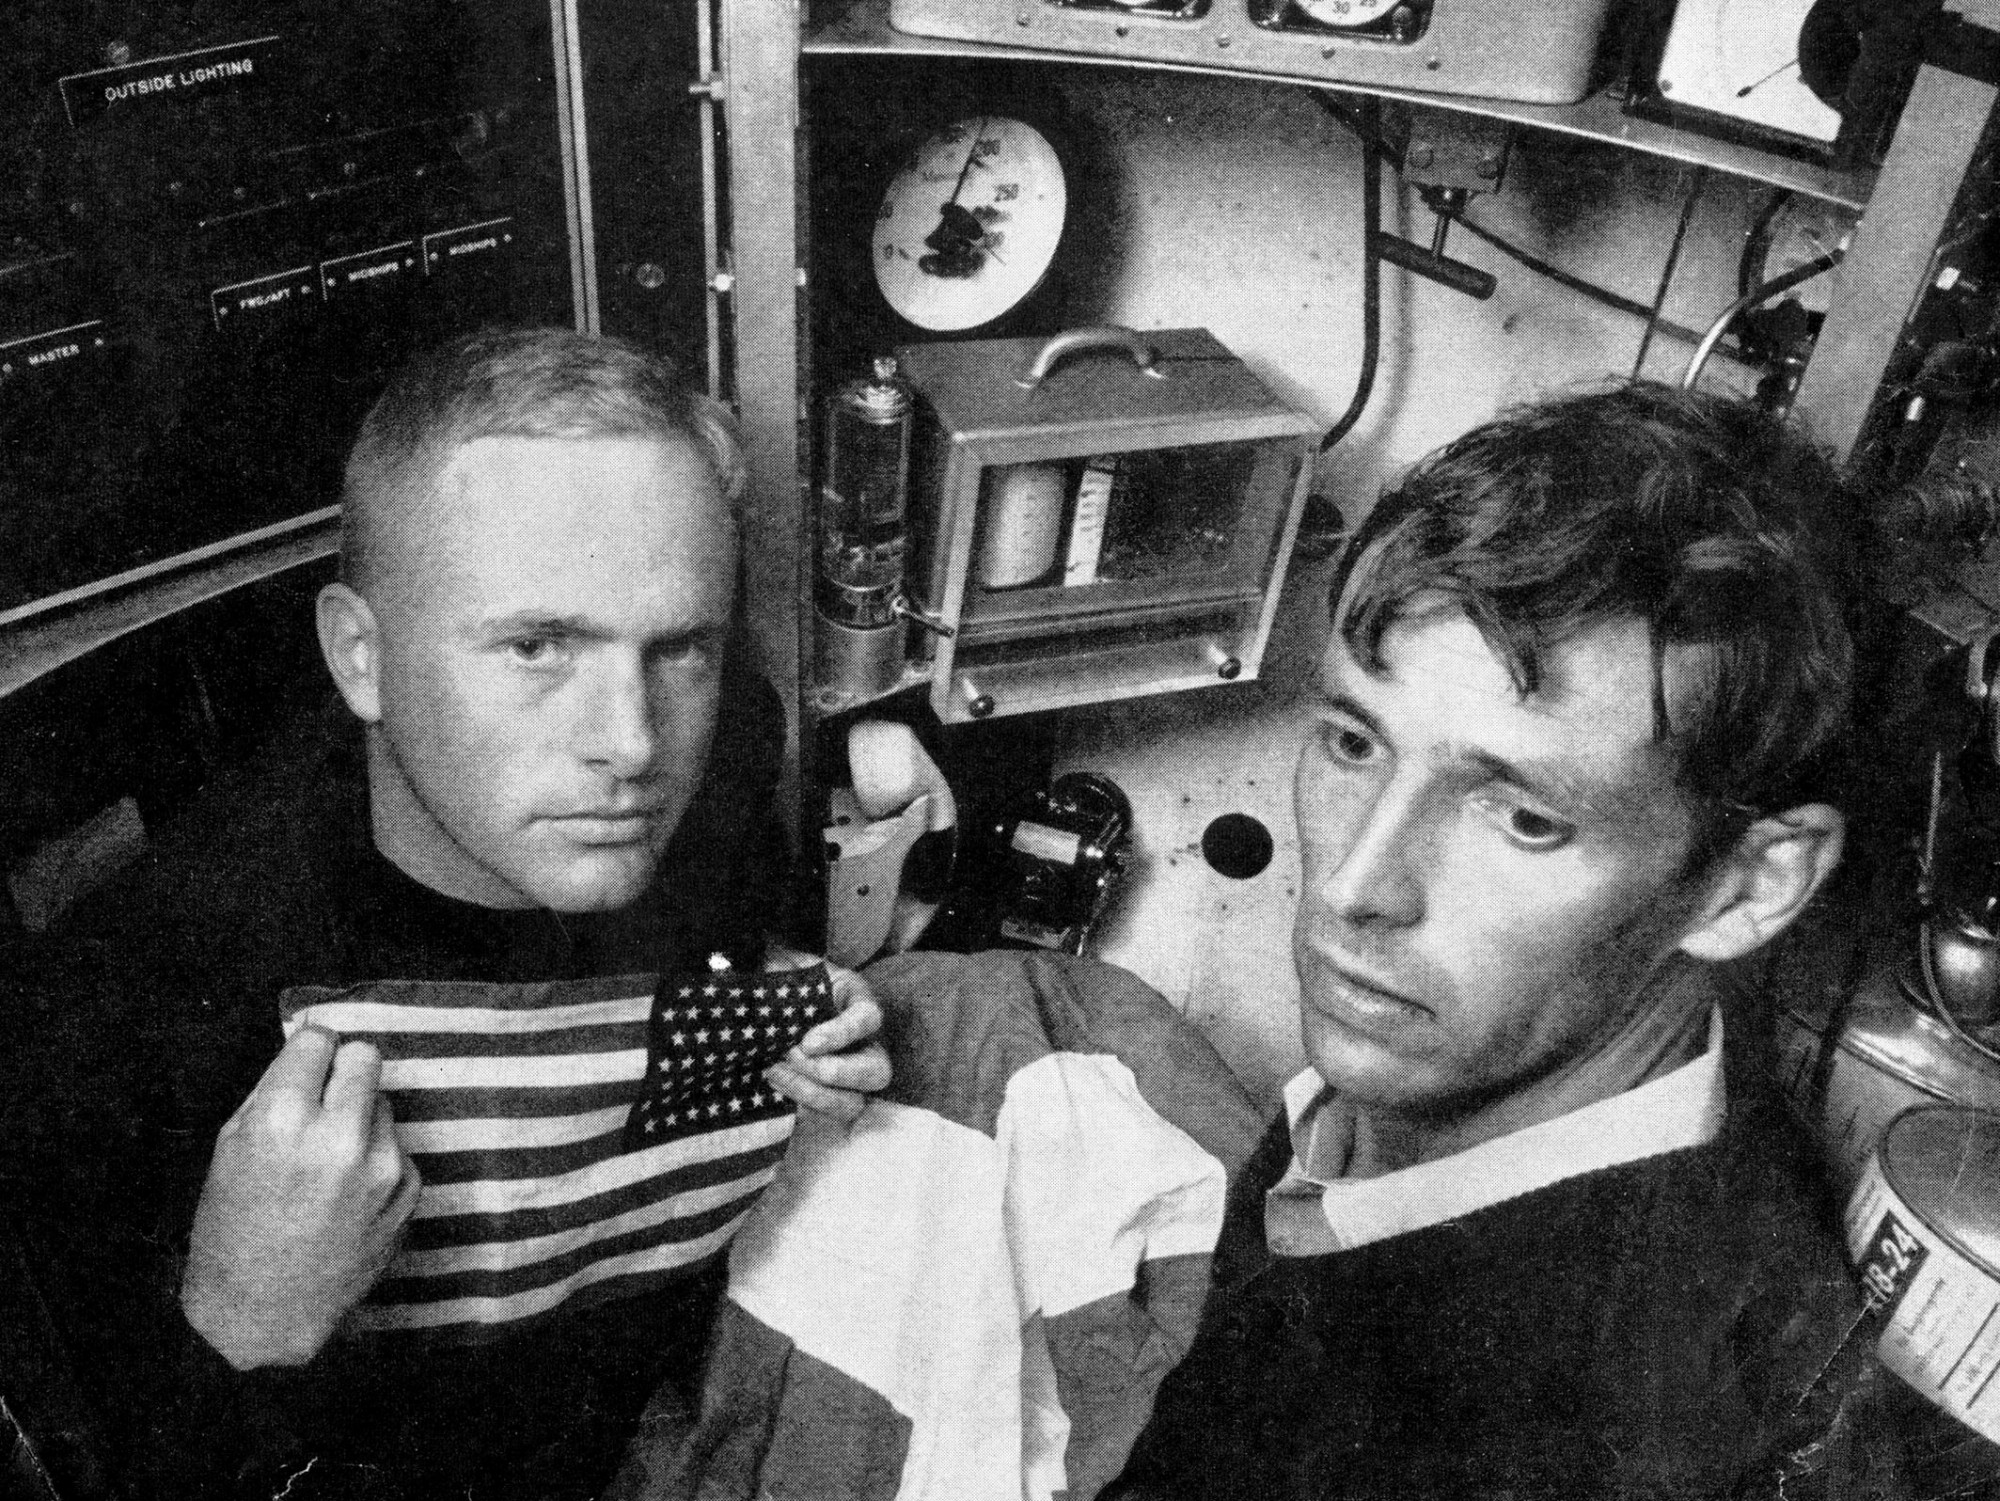 Lieutenant Don Walsh (left) and Jacques Piccard in the bathyscaphe.